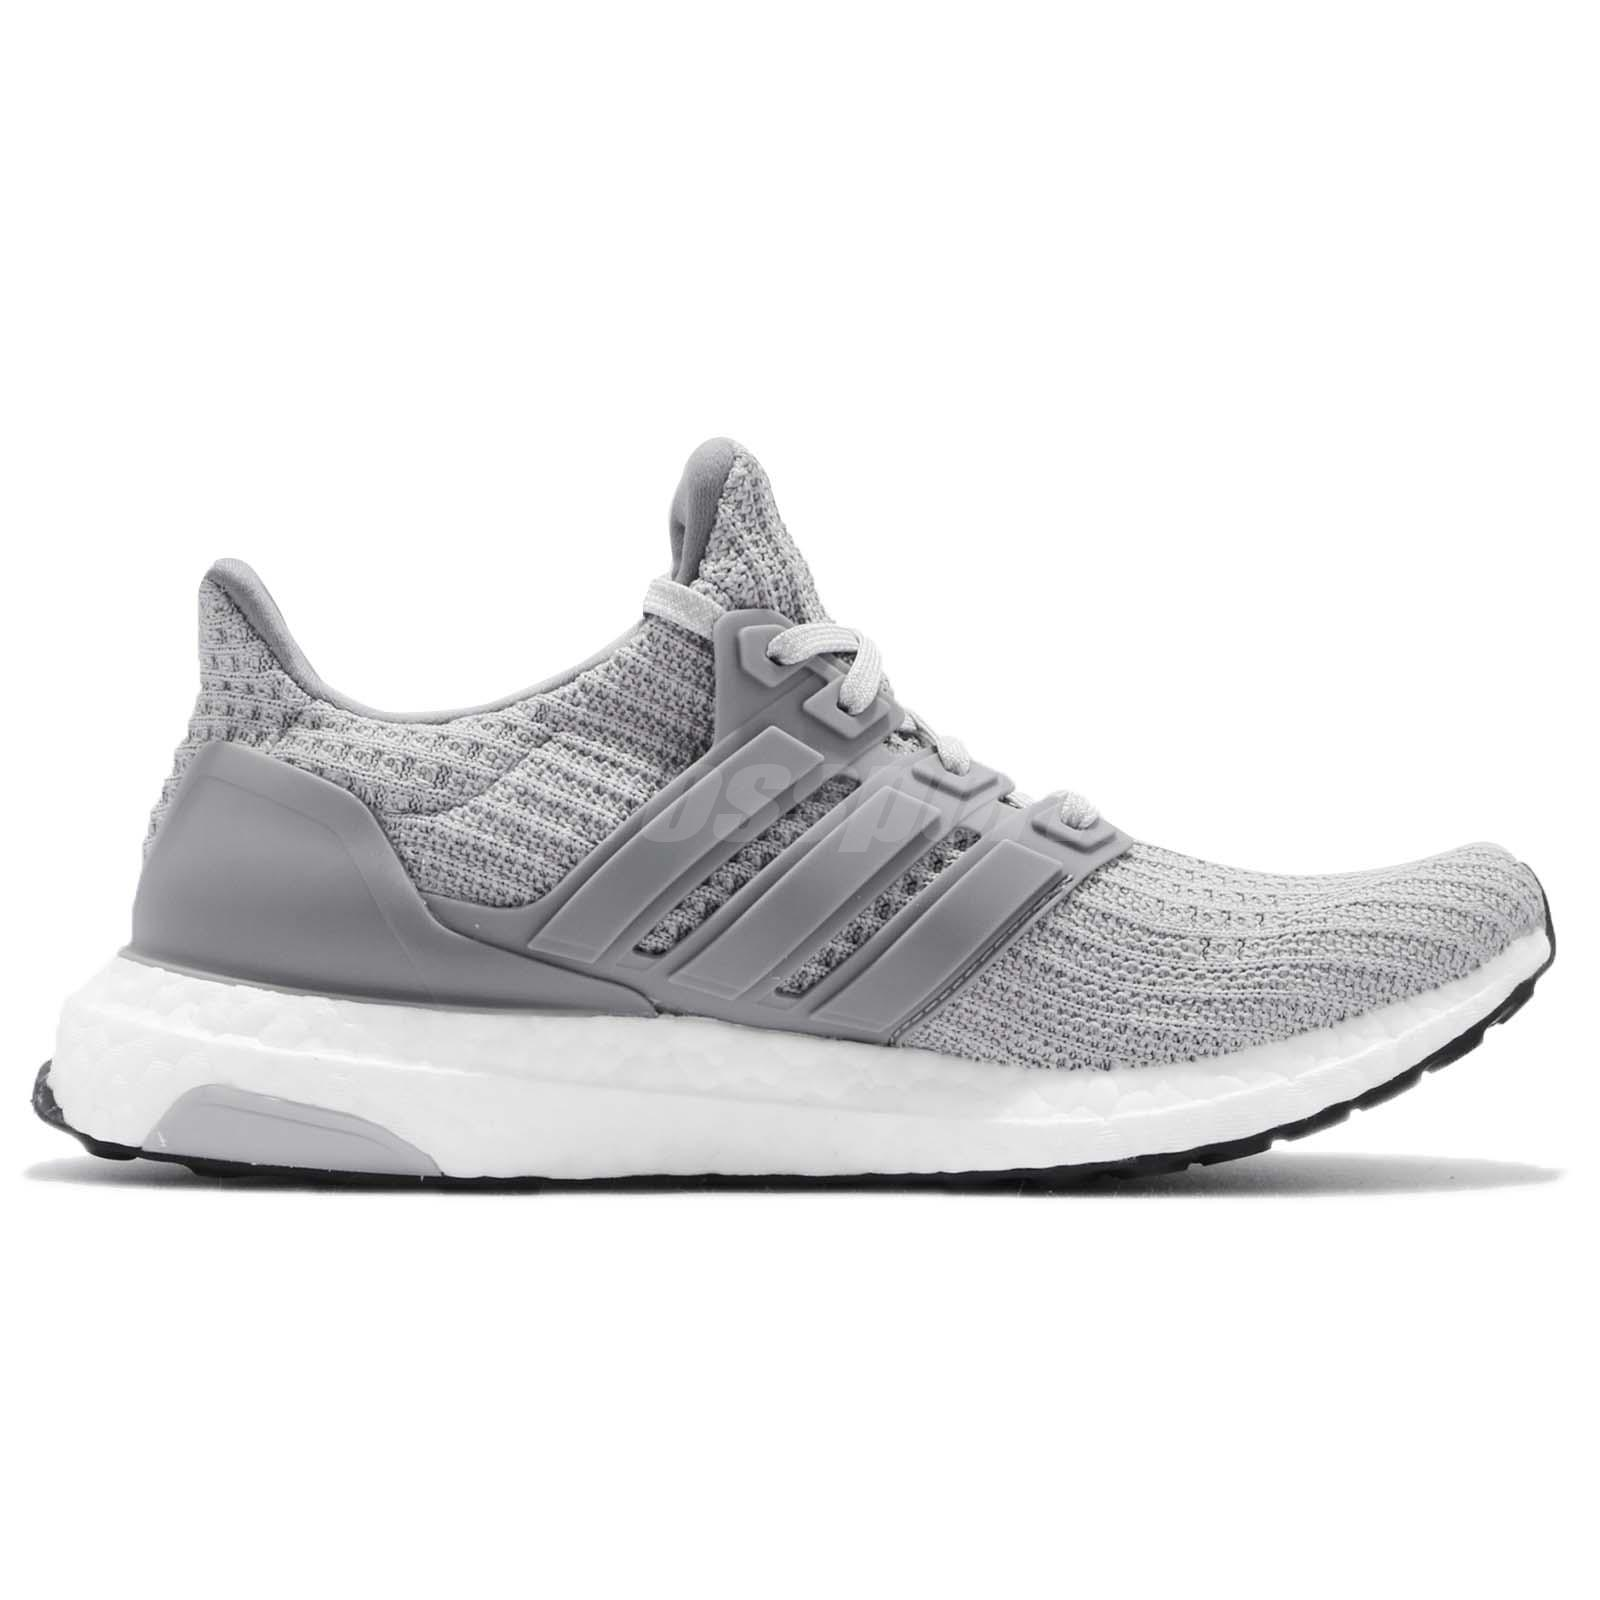 a22bfde764b adidas UltraBOOST W 4.0 Grey White Women Running Casual Shoes ...